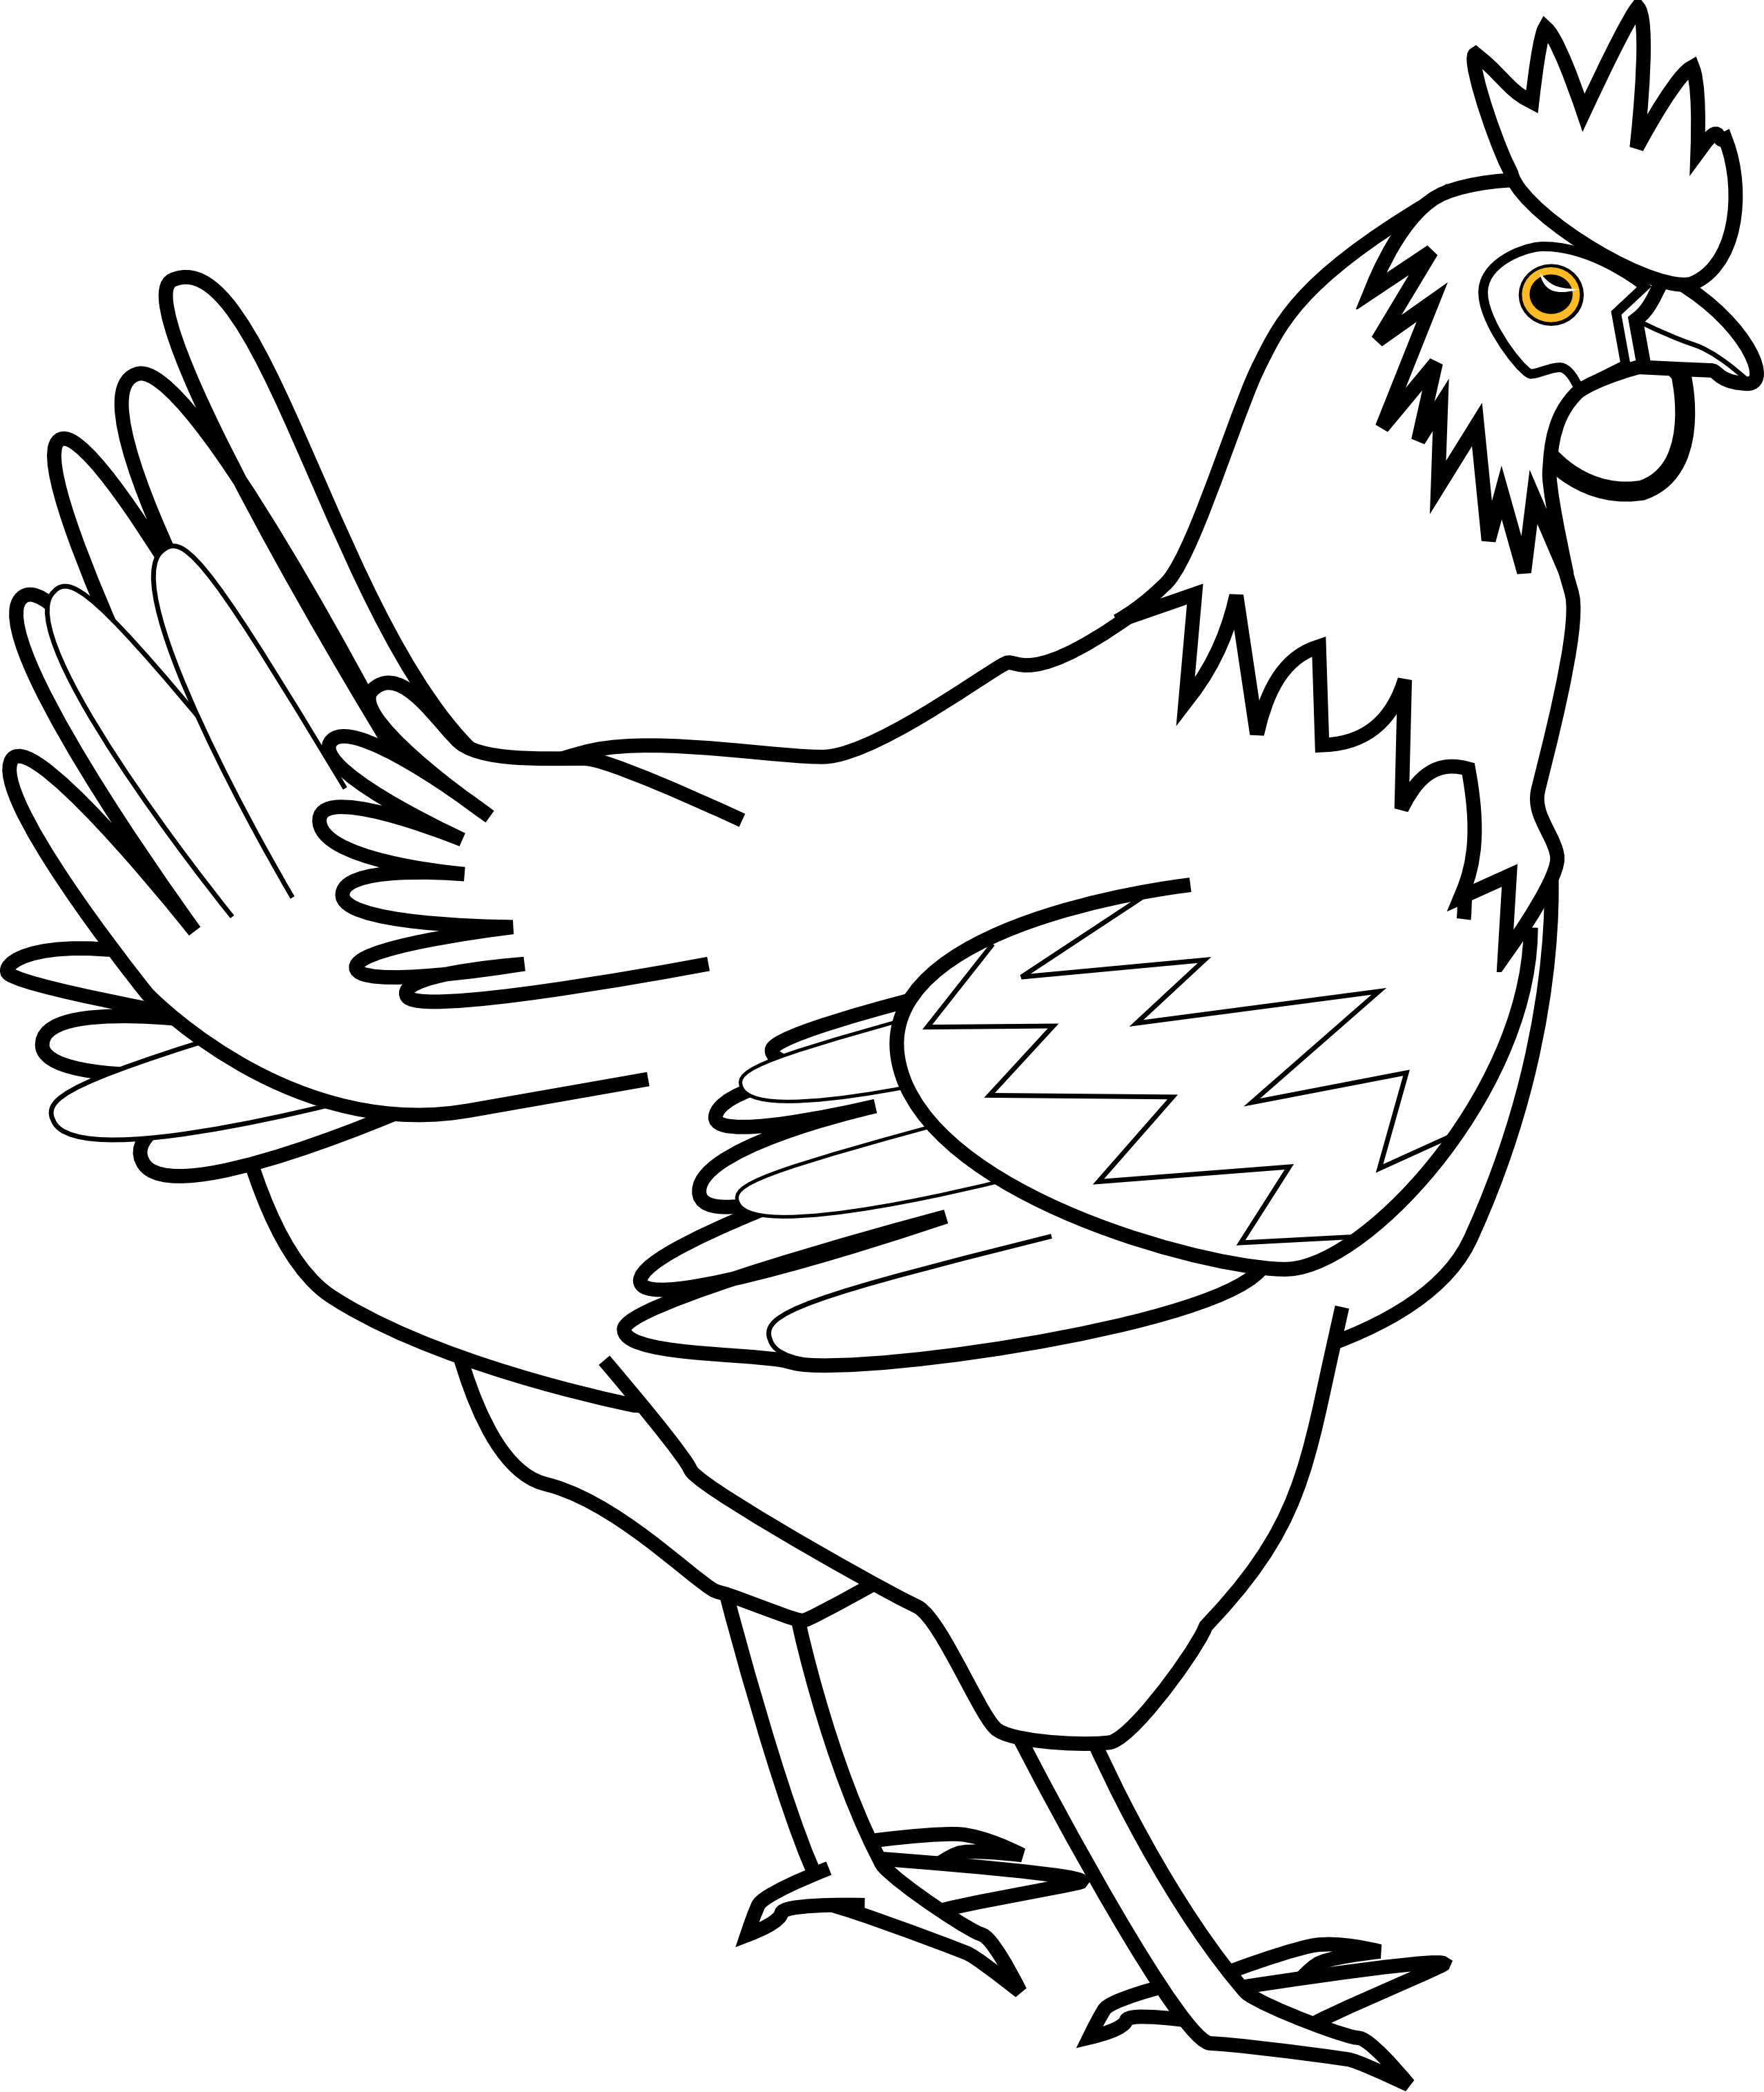 Chicken Clipart Black And White & Chicken Black And White Clip Art.